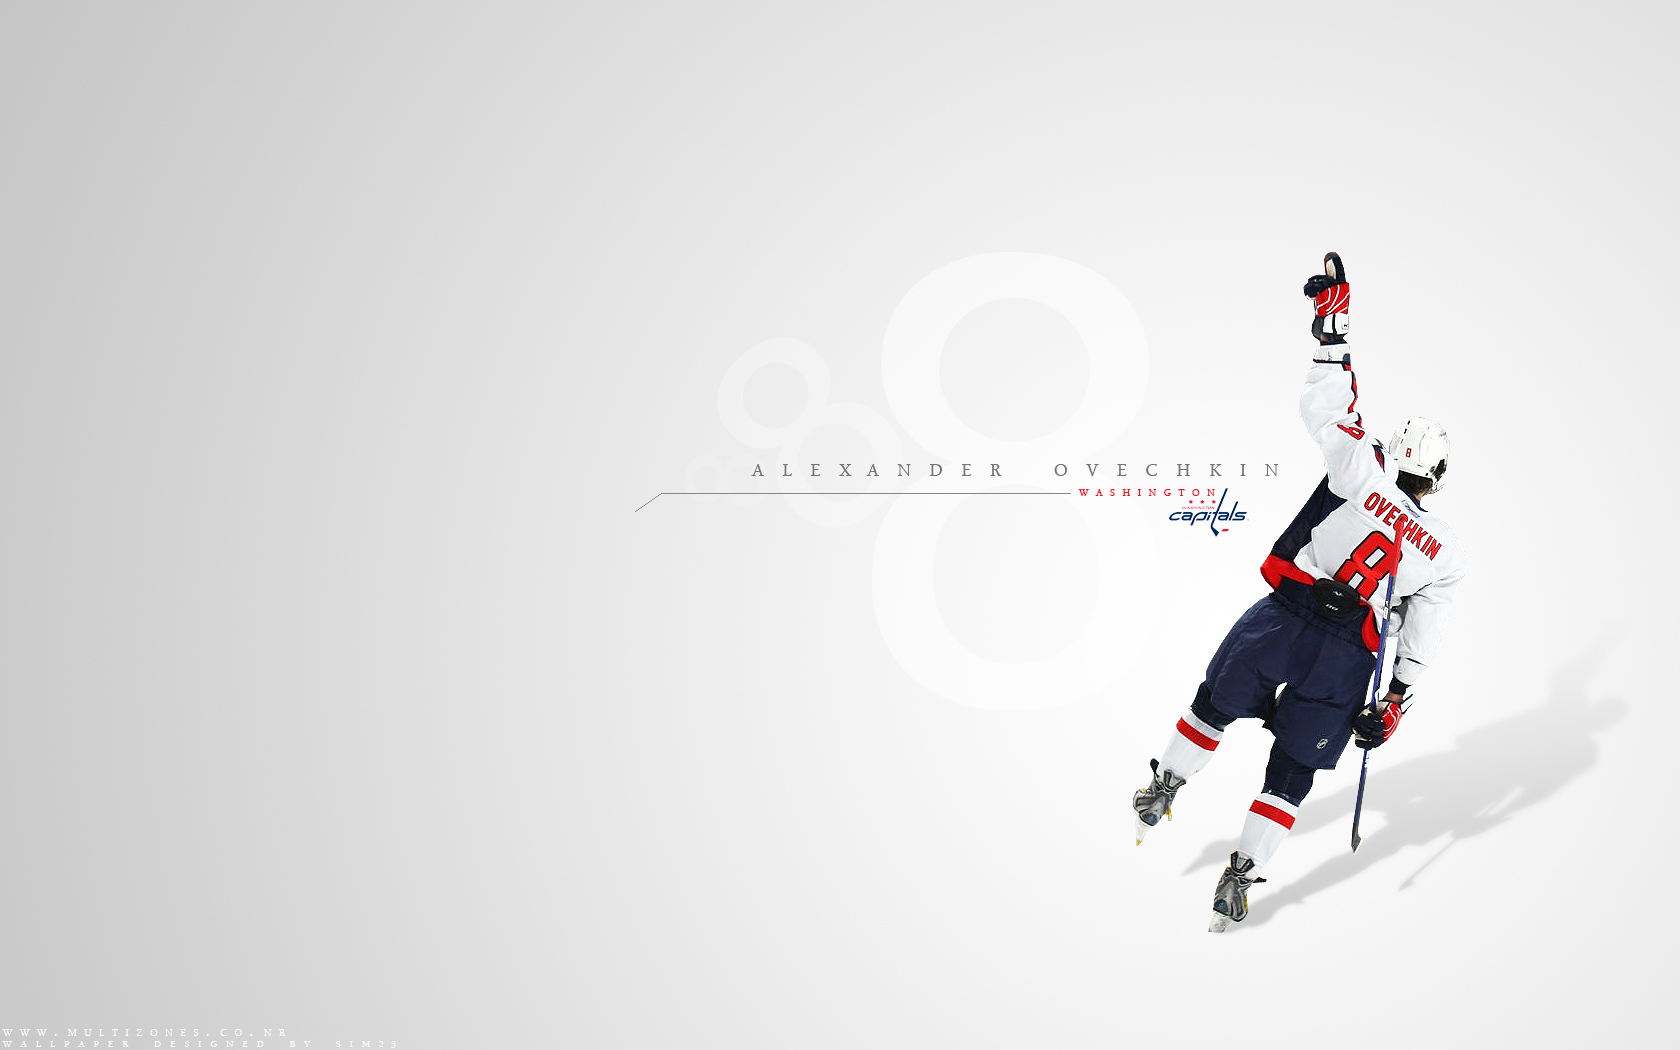 Alexander Ovechkin NHL Hockey Washington Capitals wallpaper background 1680x1050